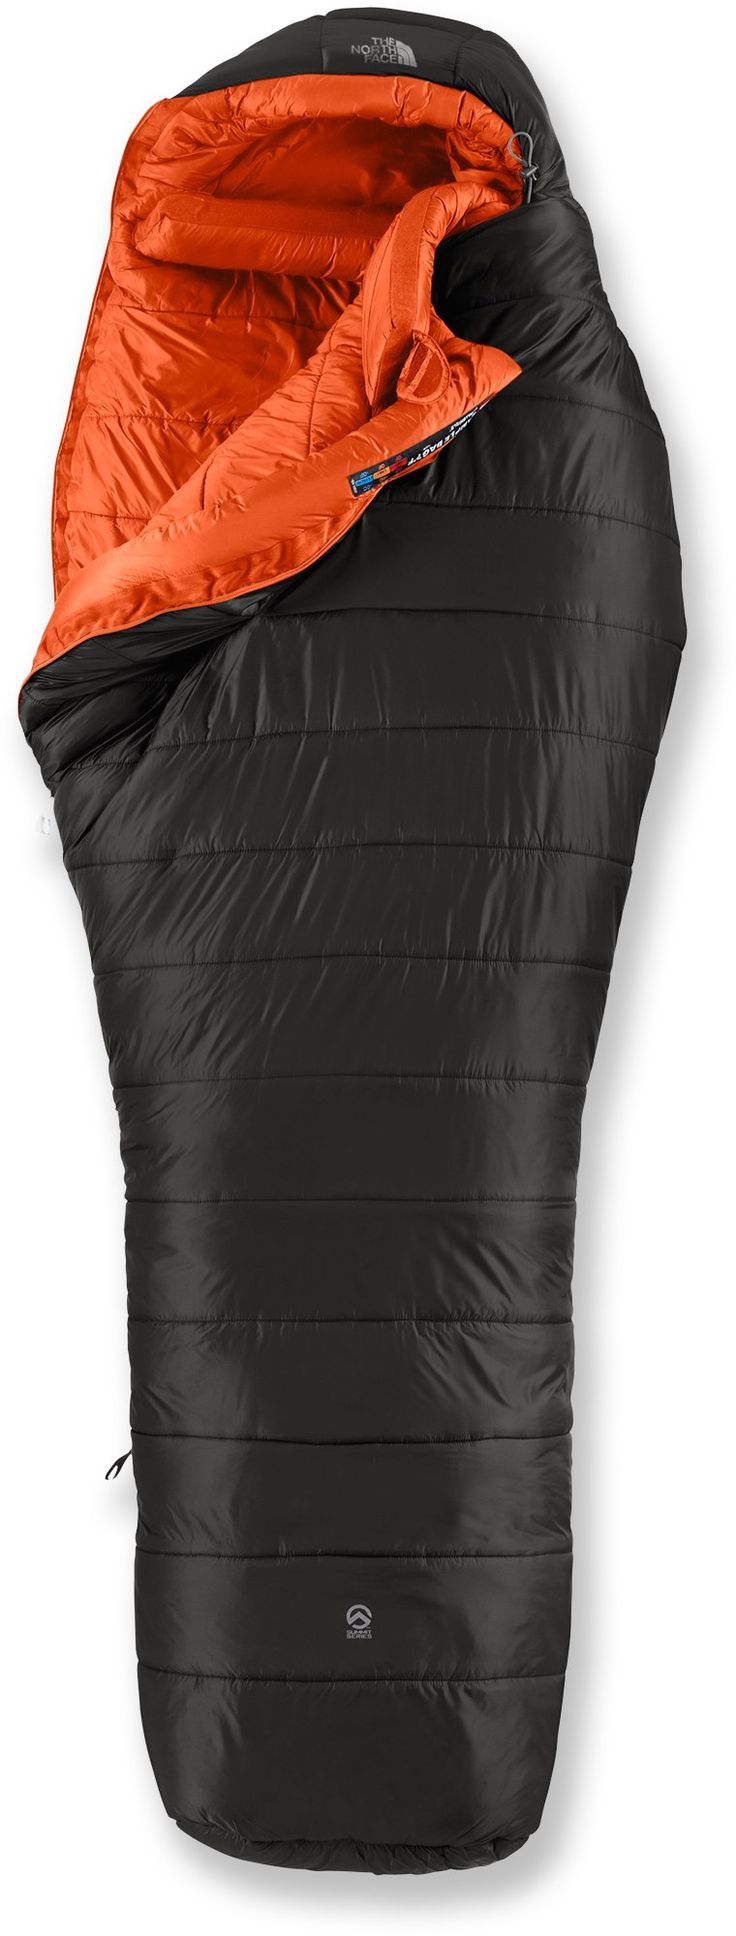 Since my sleeping bag from when I was 10 finally broke down - I would like The North Face Dark Star -20 Sleeping Bag. It will especially come in handy for the next Mother Earth News Fair!